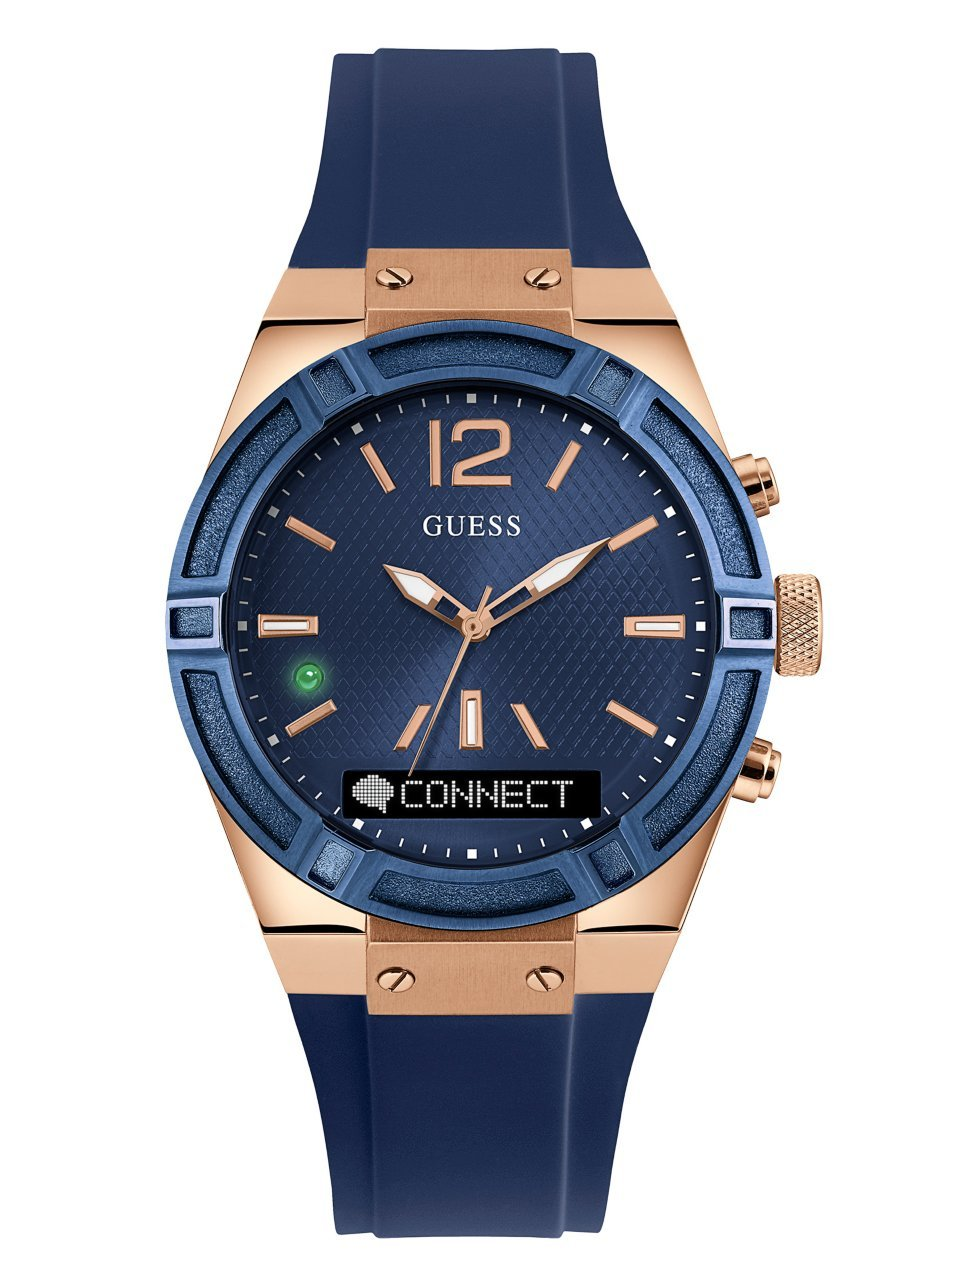 GUESS Women's CONNECT Smartwatch with Amazon Alexa and Silicone Strap Buckle - iOS and Android Compatible -  Blue by GUESS